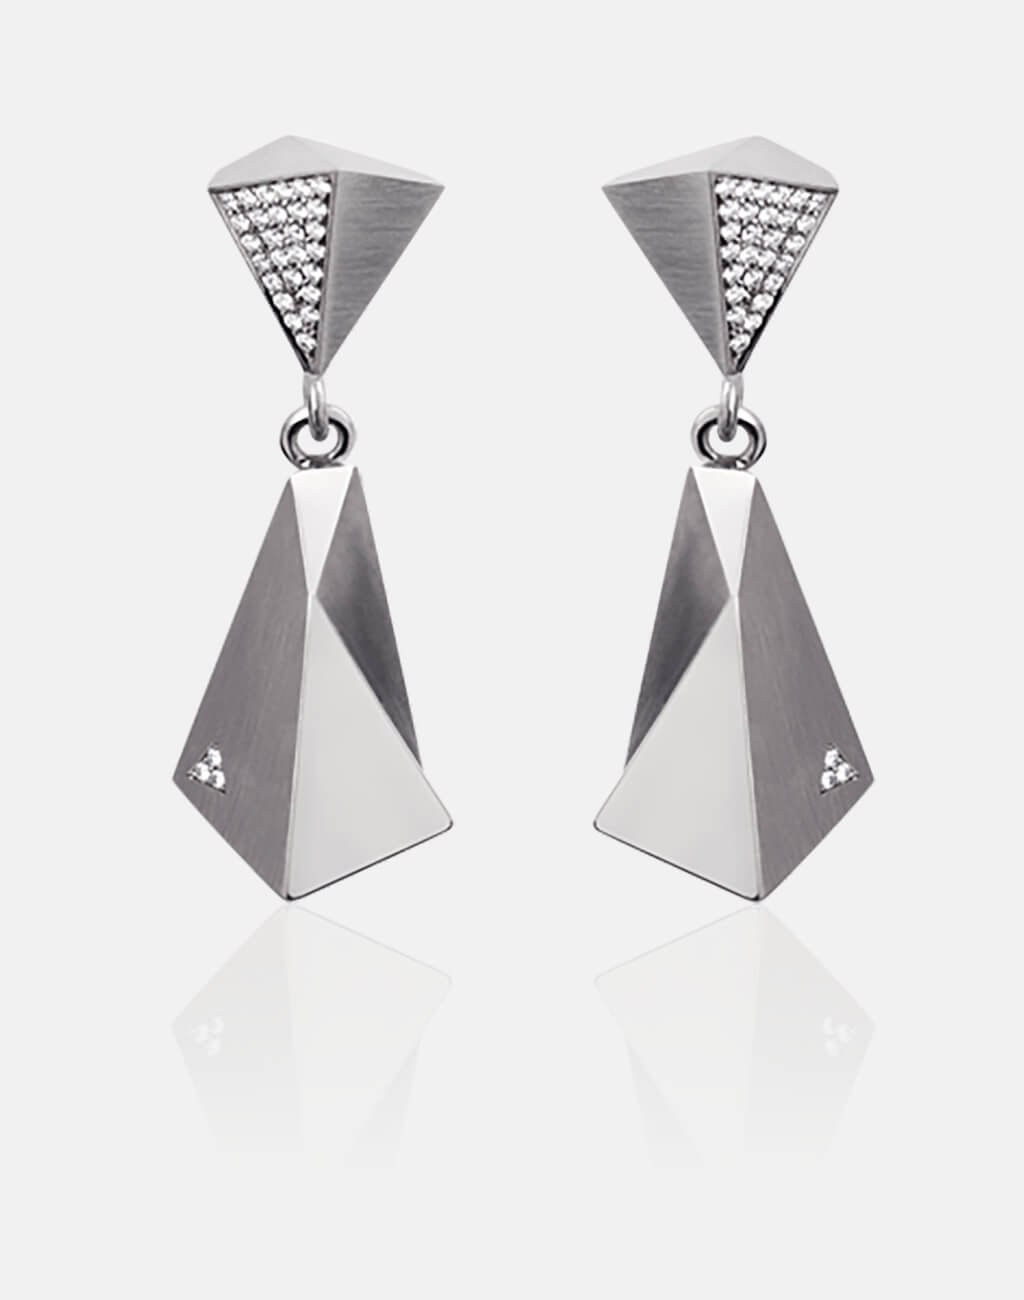 Stealth | Ohrringe, Ohrhänger - 750 Weissgold, 60 Diamanten-Brillanten | earrings - 18kt white gold, 60 diamonds | SYNO-Schmuck.com